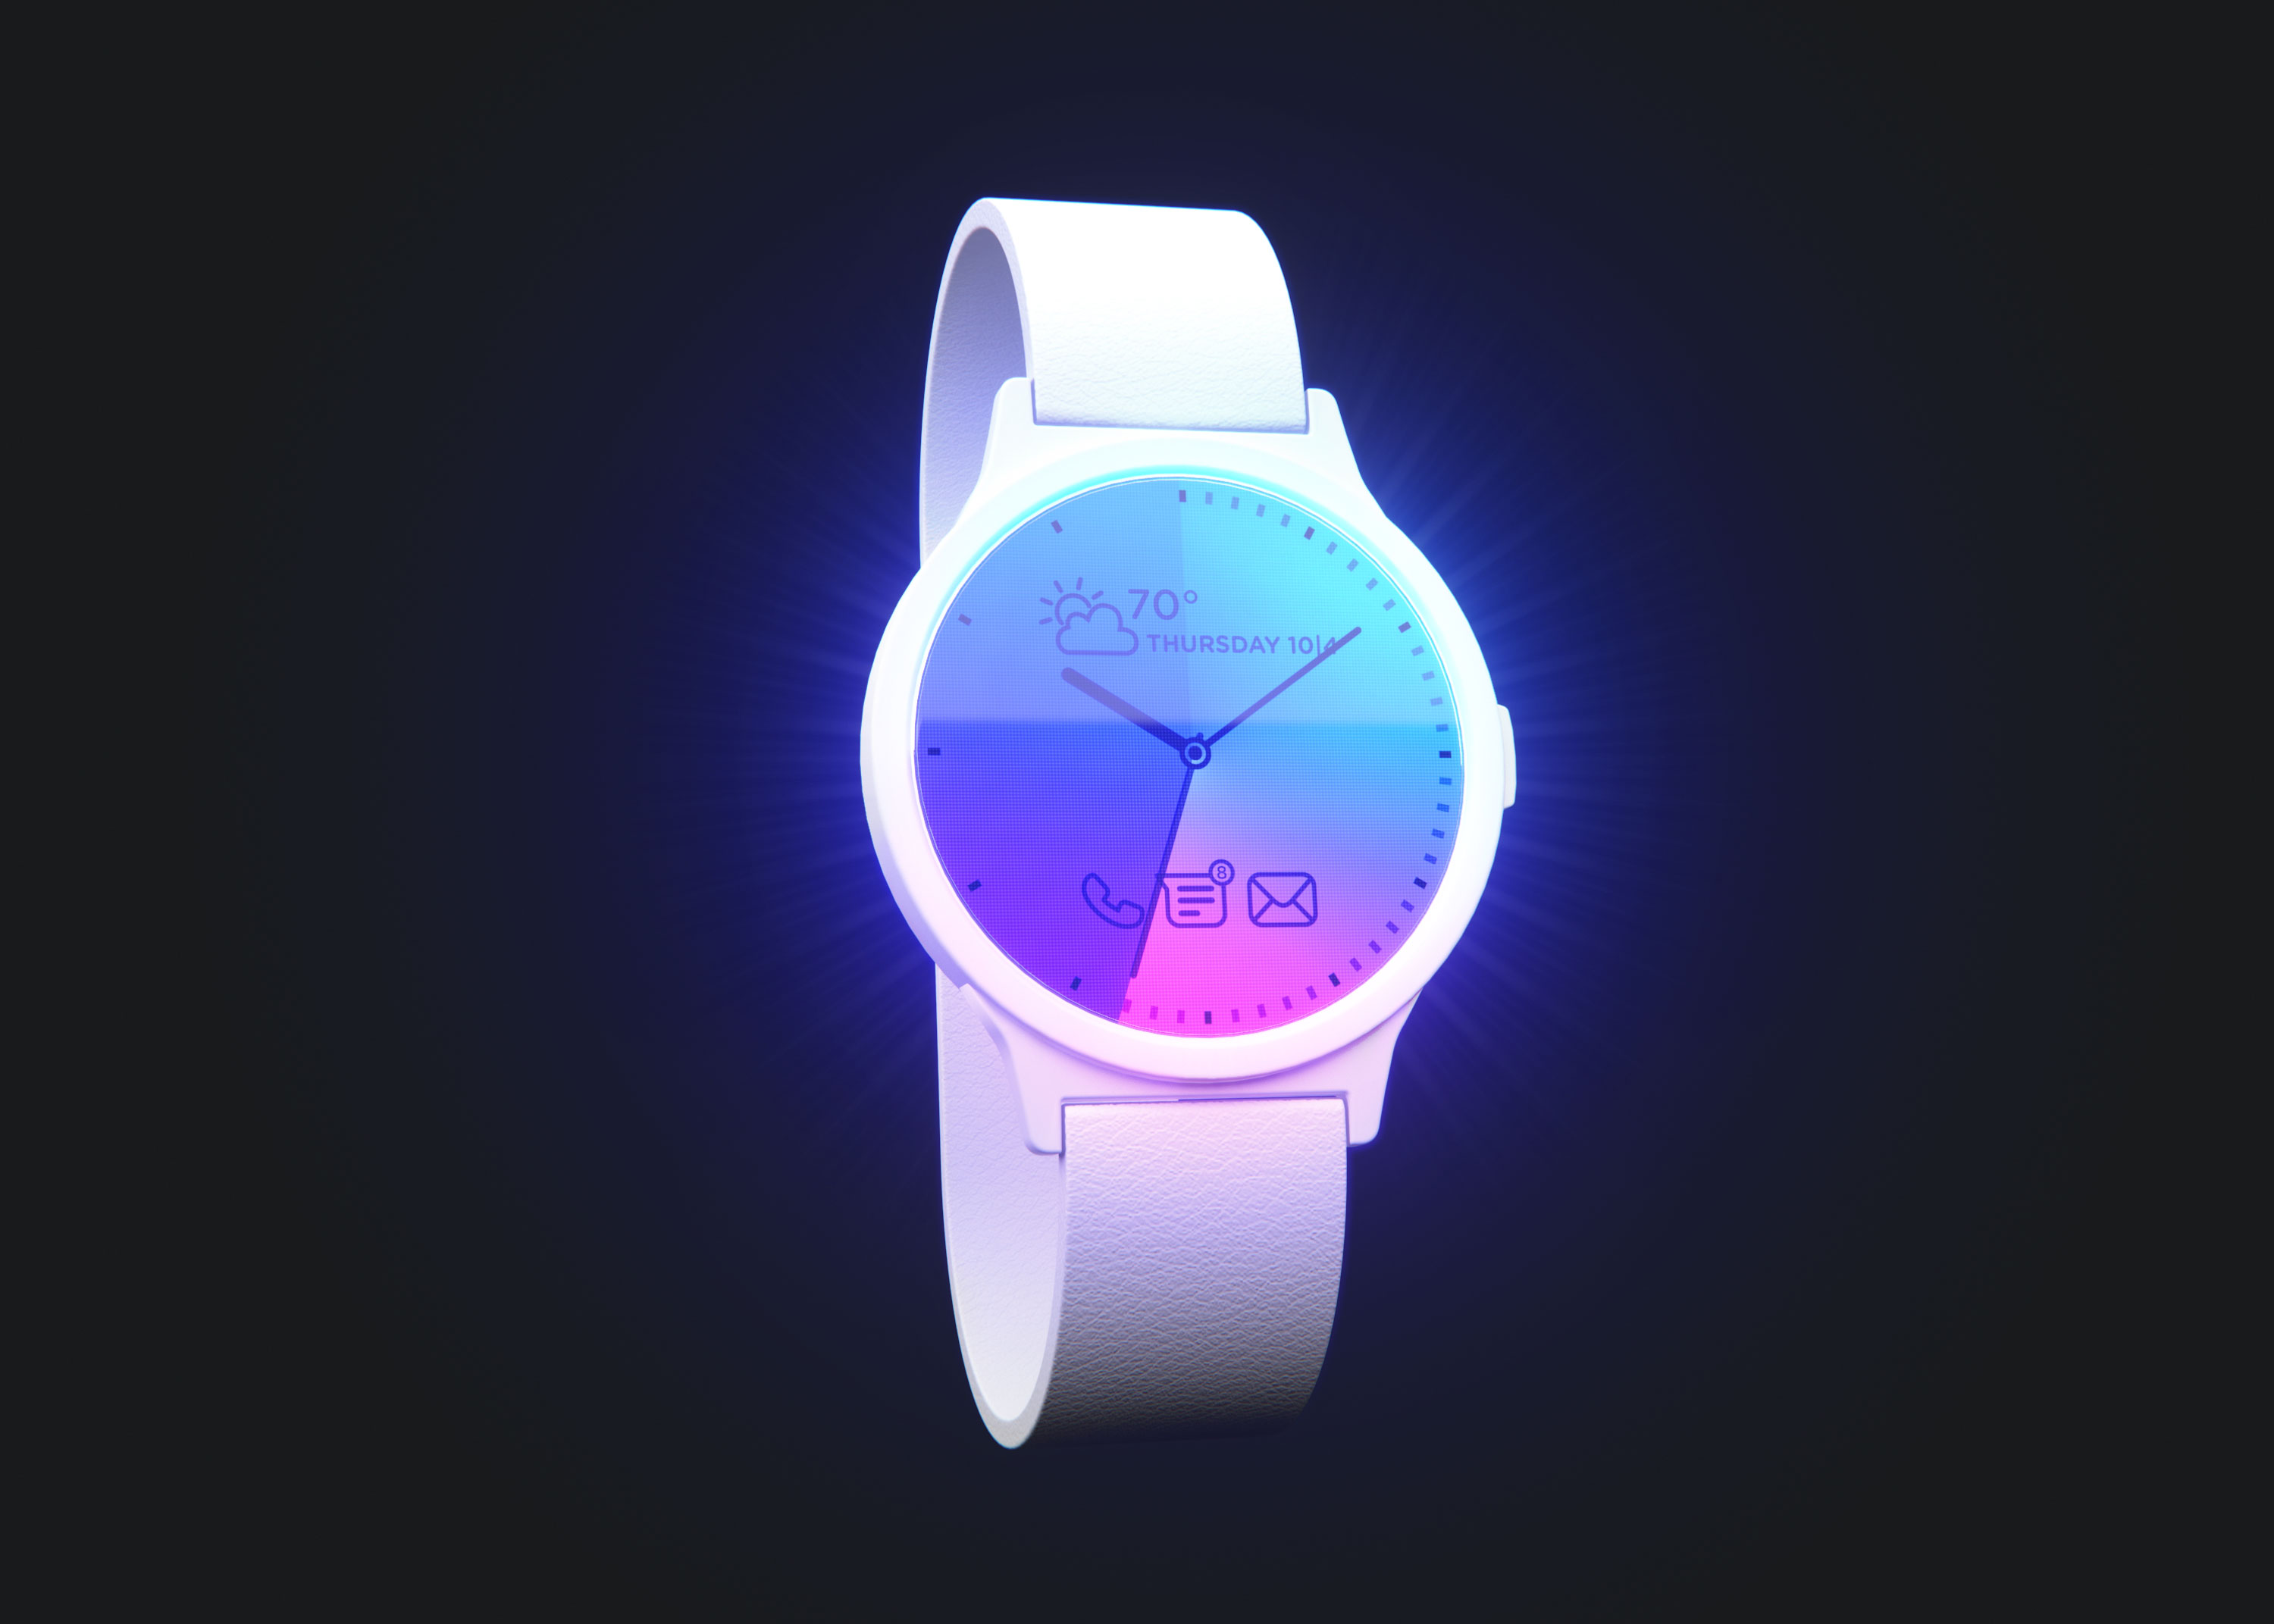 Frontlit Smartwatch Wearable Device